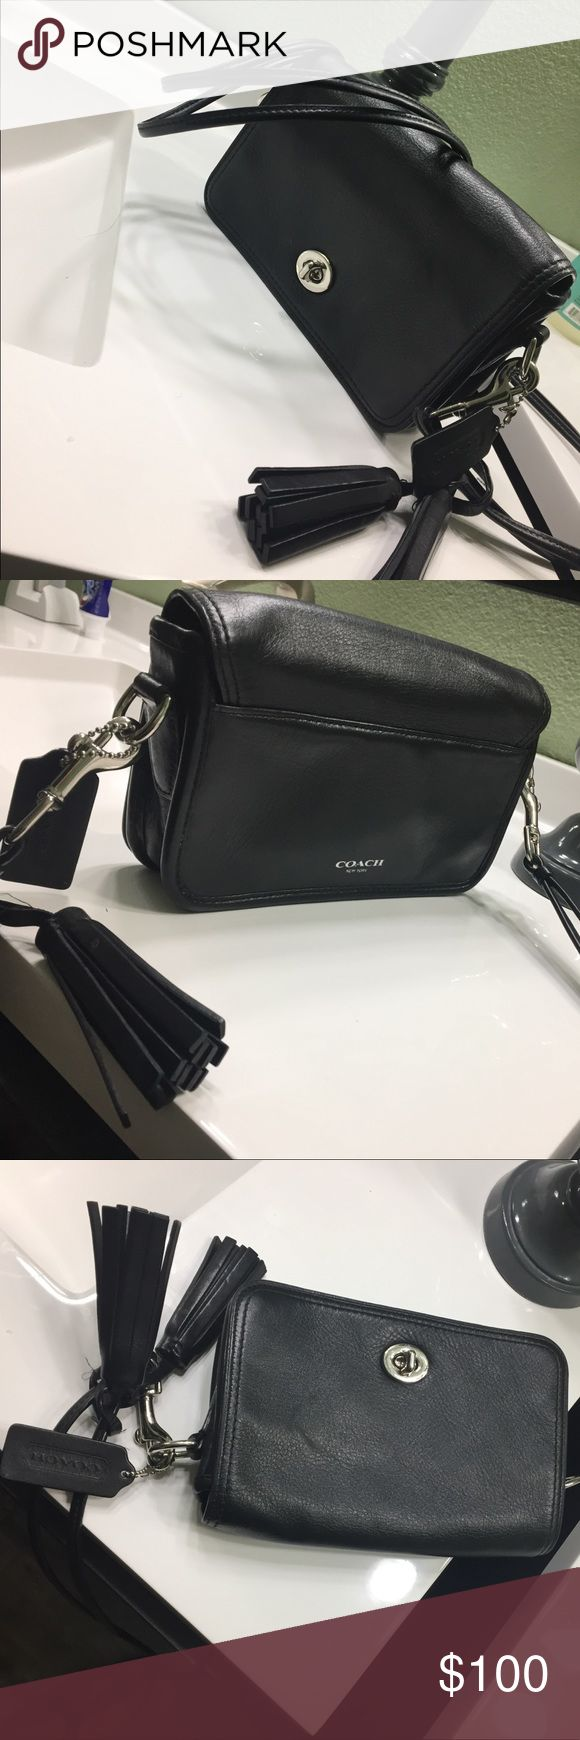 Coach legacy cross body purse Gently worn cross body.  In excellent condition.  Straps can be removed and used as a clutch. Coach Bags Crossbody Bags